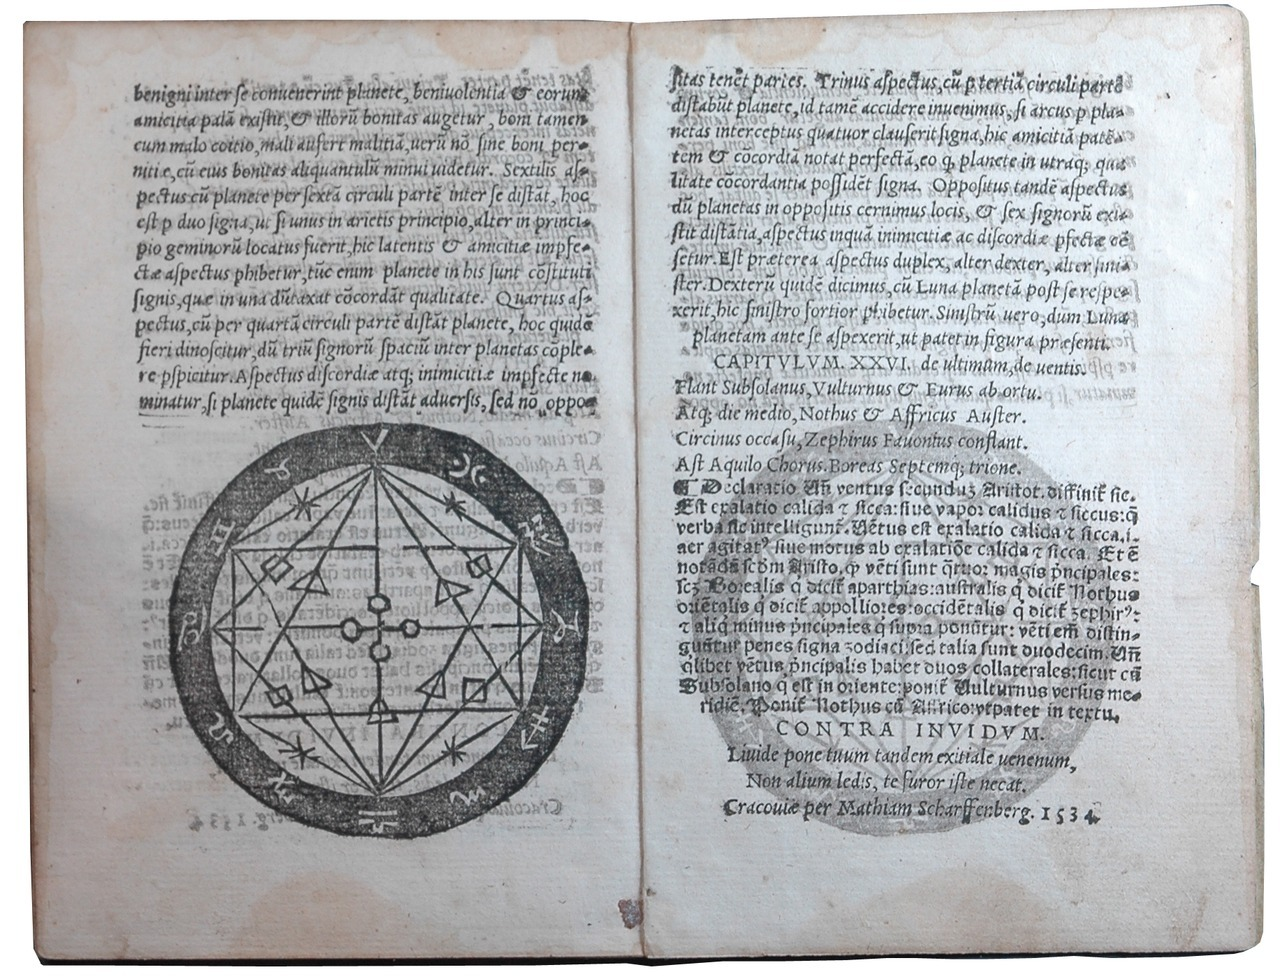 "Early Polish Printing pt 2: A summary of the ""Computus"" or the calculation by which the date of Easter Sunday is determined i.e. the means to find the date of the first full moon after the vernal equinox. A popular publication in Cracow issued by the major printing houses of the early 16th century, beginning with Jan Haller and Florian Ungler's editions in 1522. This one was published by Mathiam Scharffenberg in 1534."